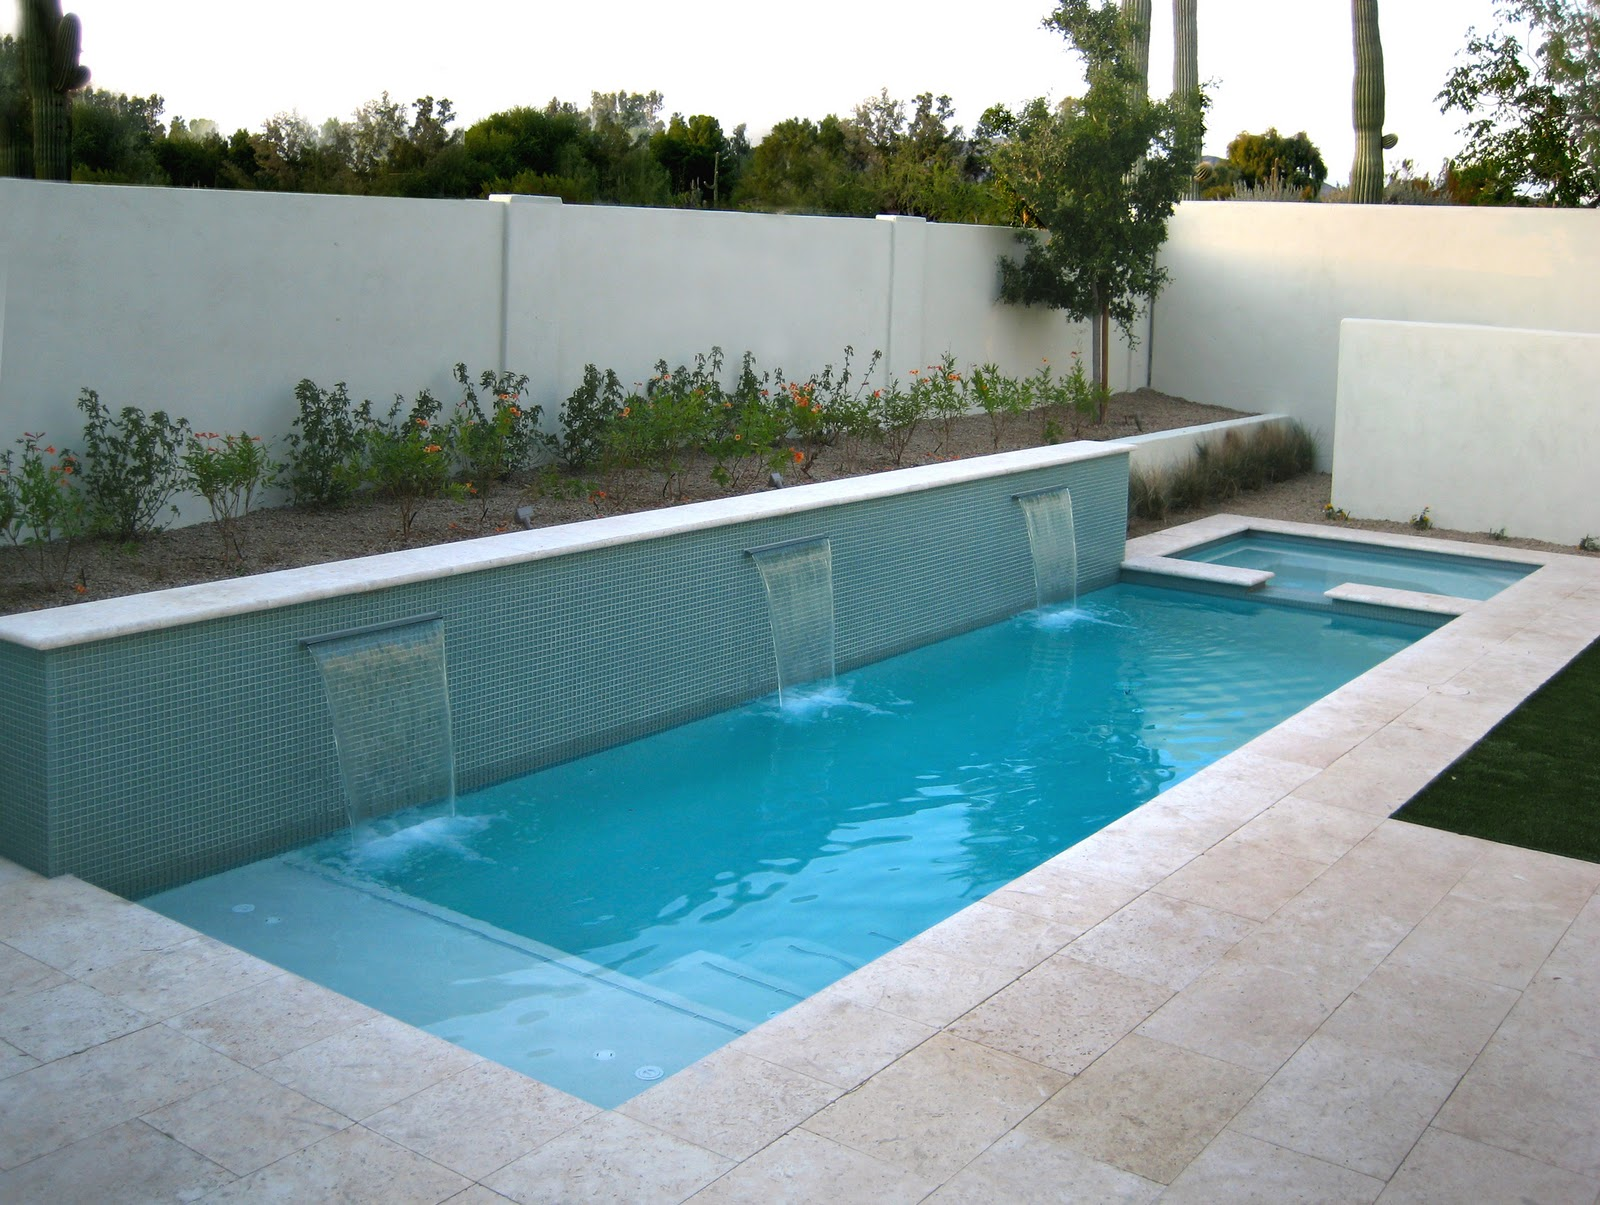 25 fabulous small backyard designs with swimming pool - Swimming pools for small backyards ...